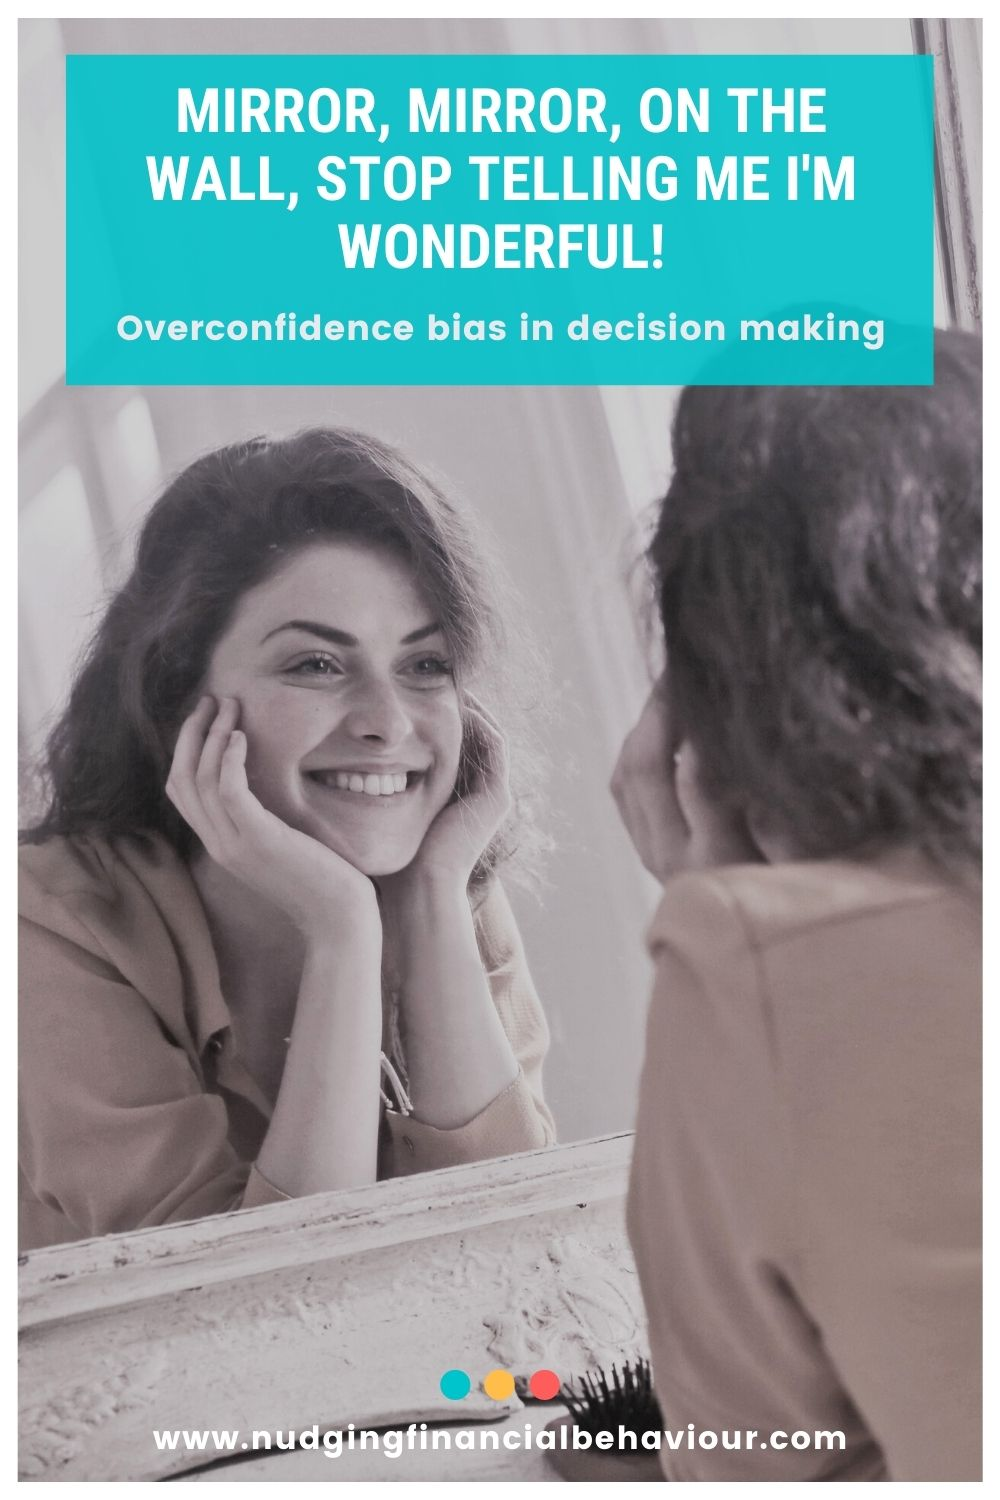 Overconfidence bias in decision making